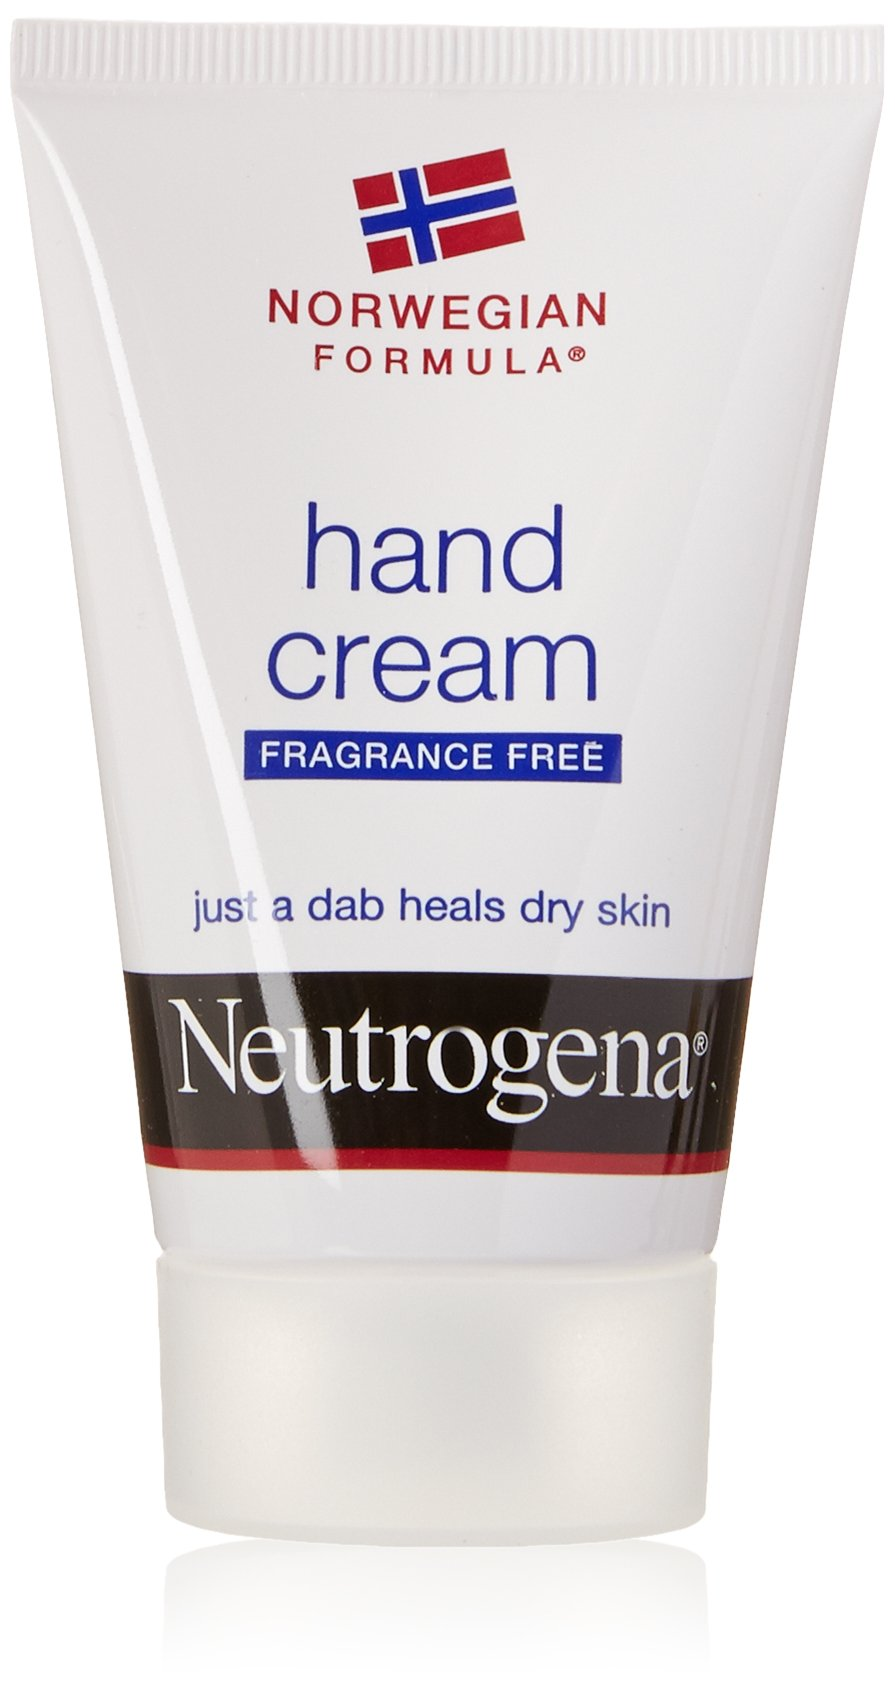 Neutrogena Hand Cream Norwegian Formula, 2 Oz (5 pack) by Neutrogena